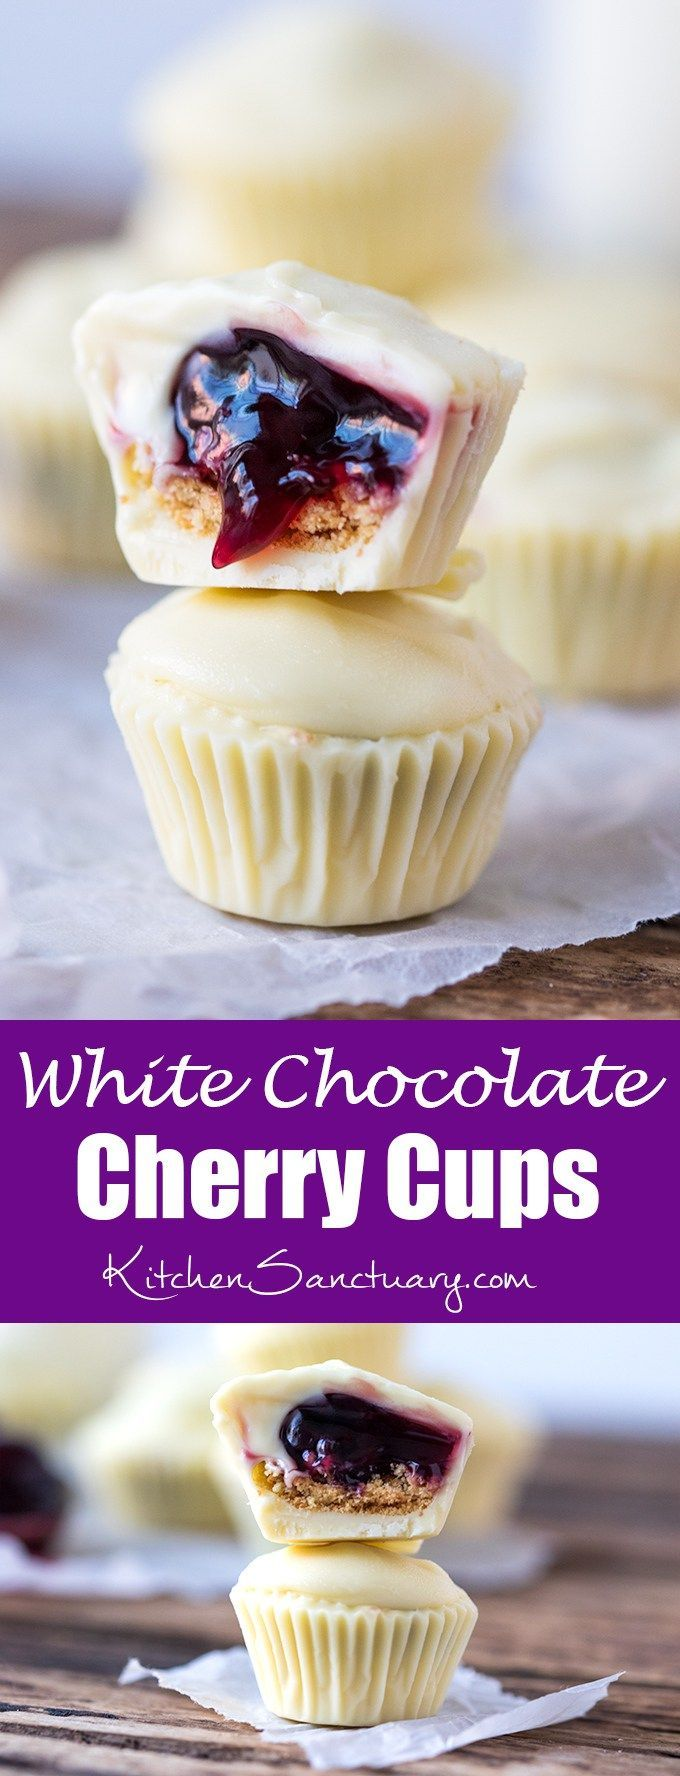 Bite Sized Creamy White Chocolate Cups Filled With Crushed Biscuit And Cherries A Simple 3